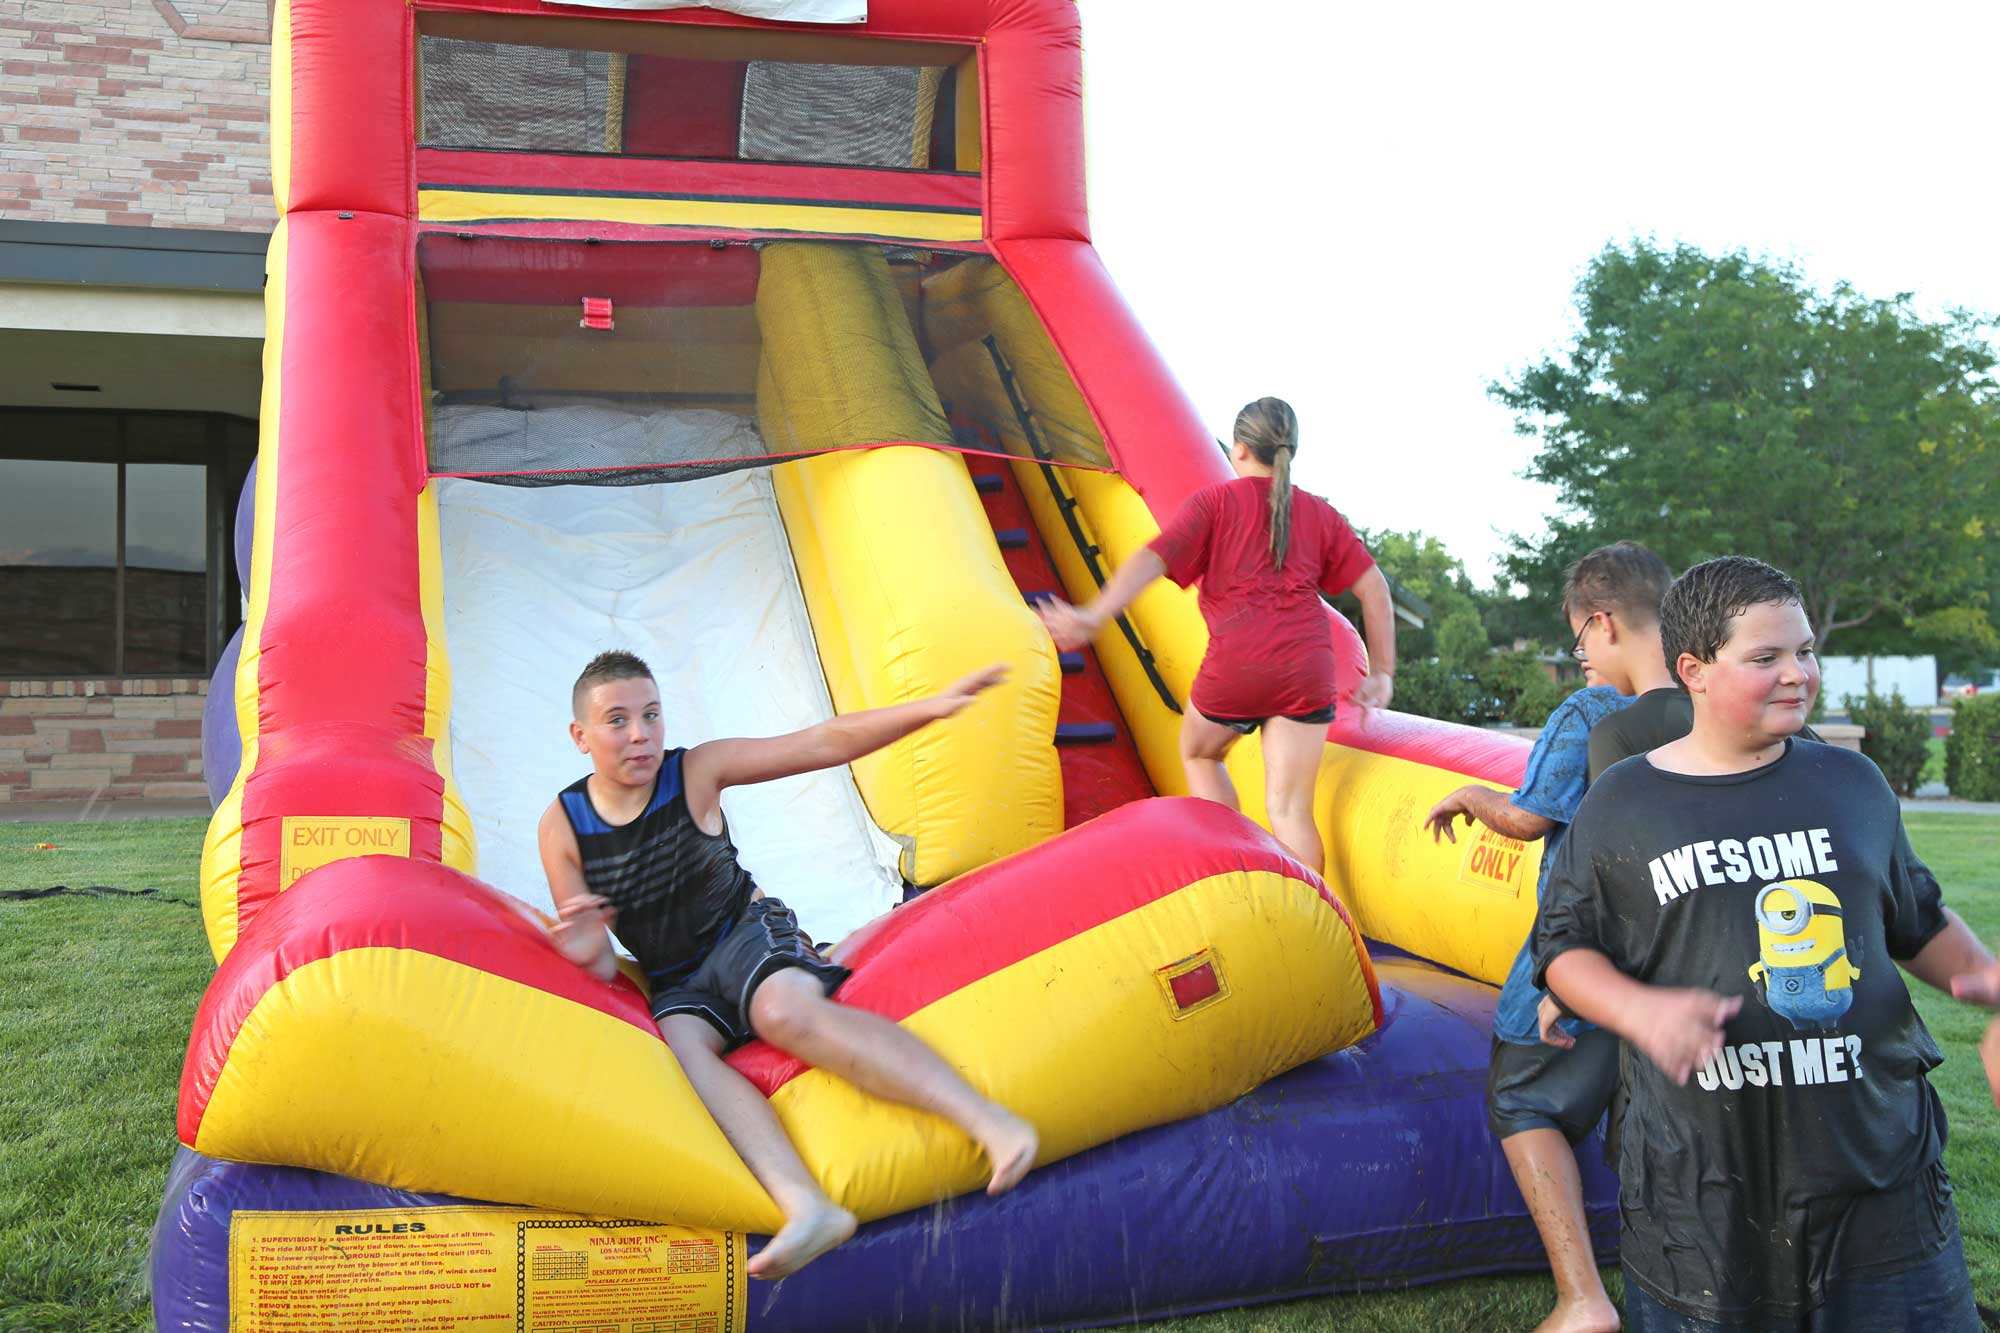 Image 1 of residents using an inflatable water slide